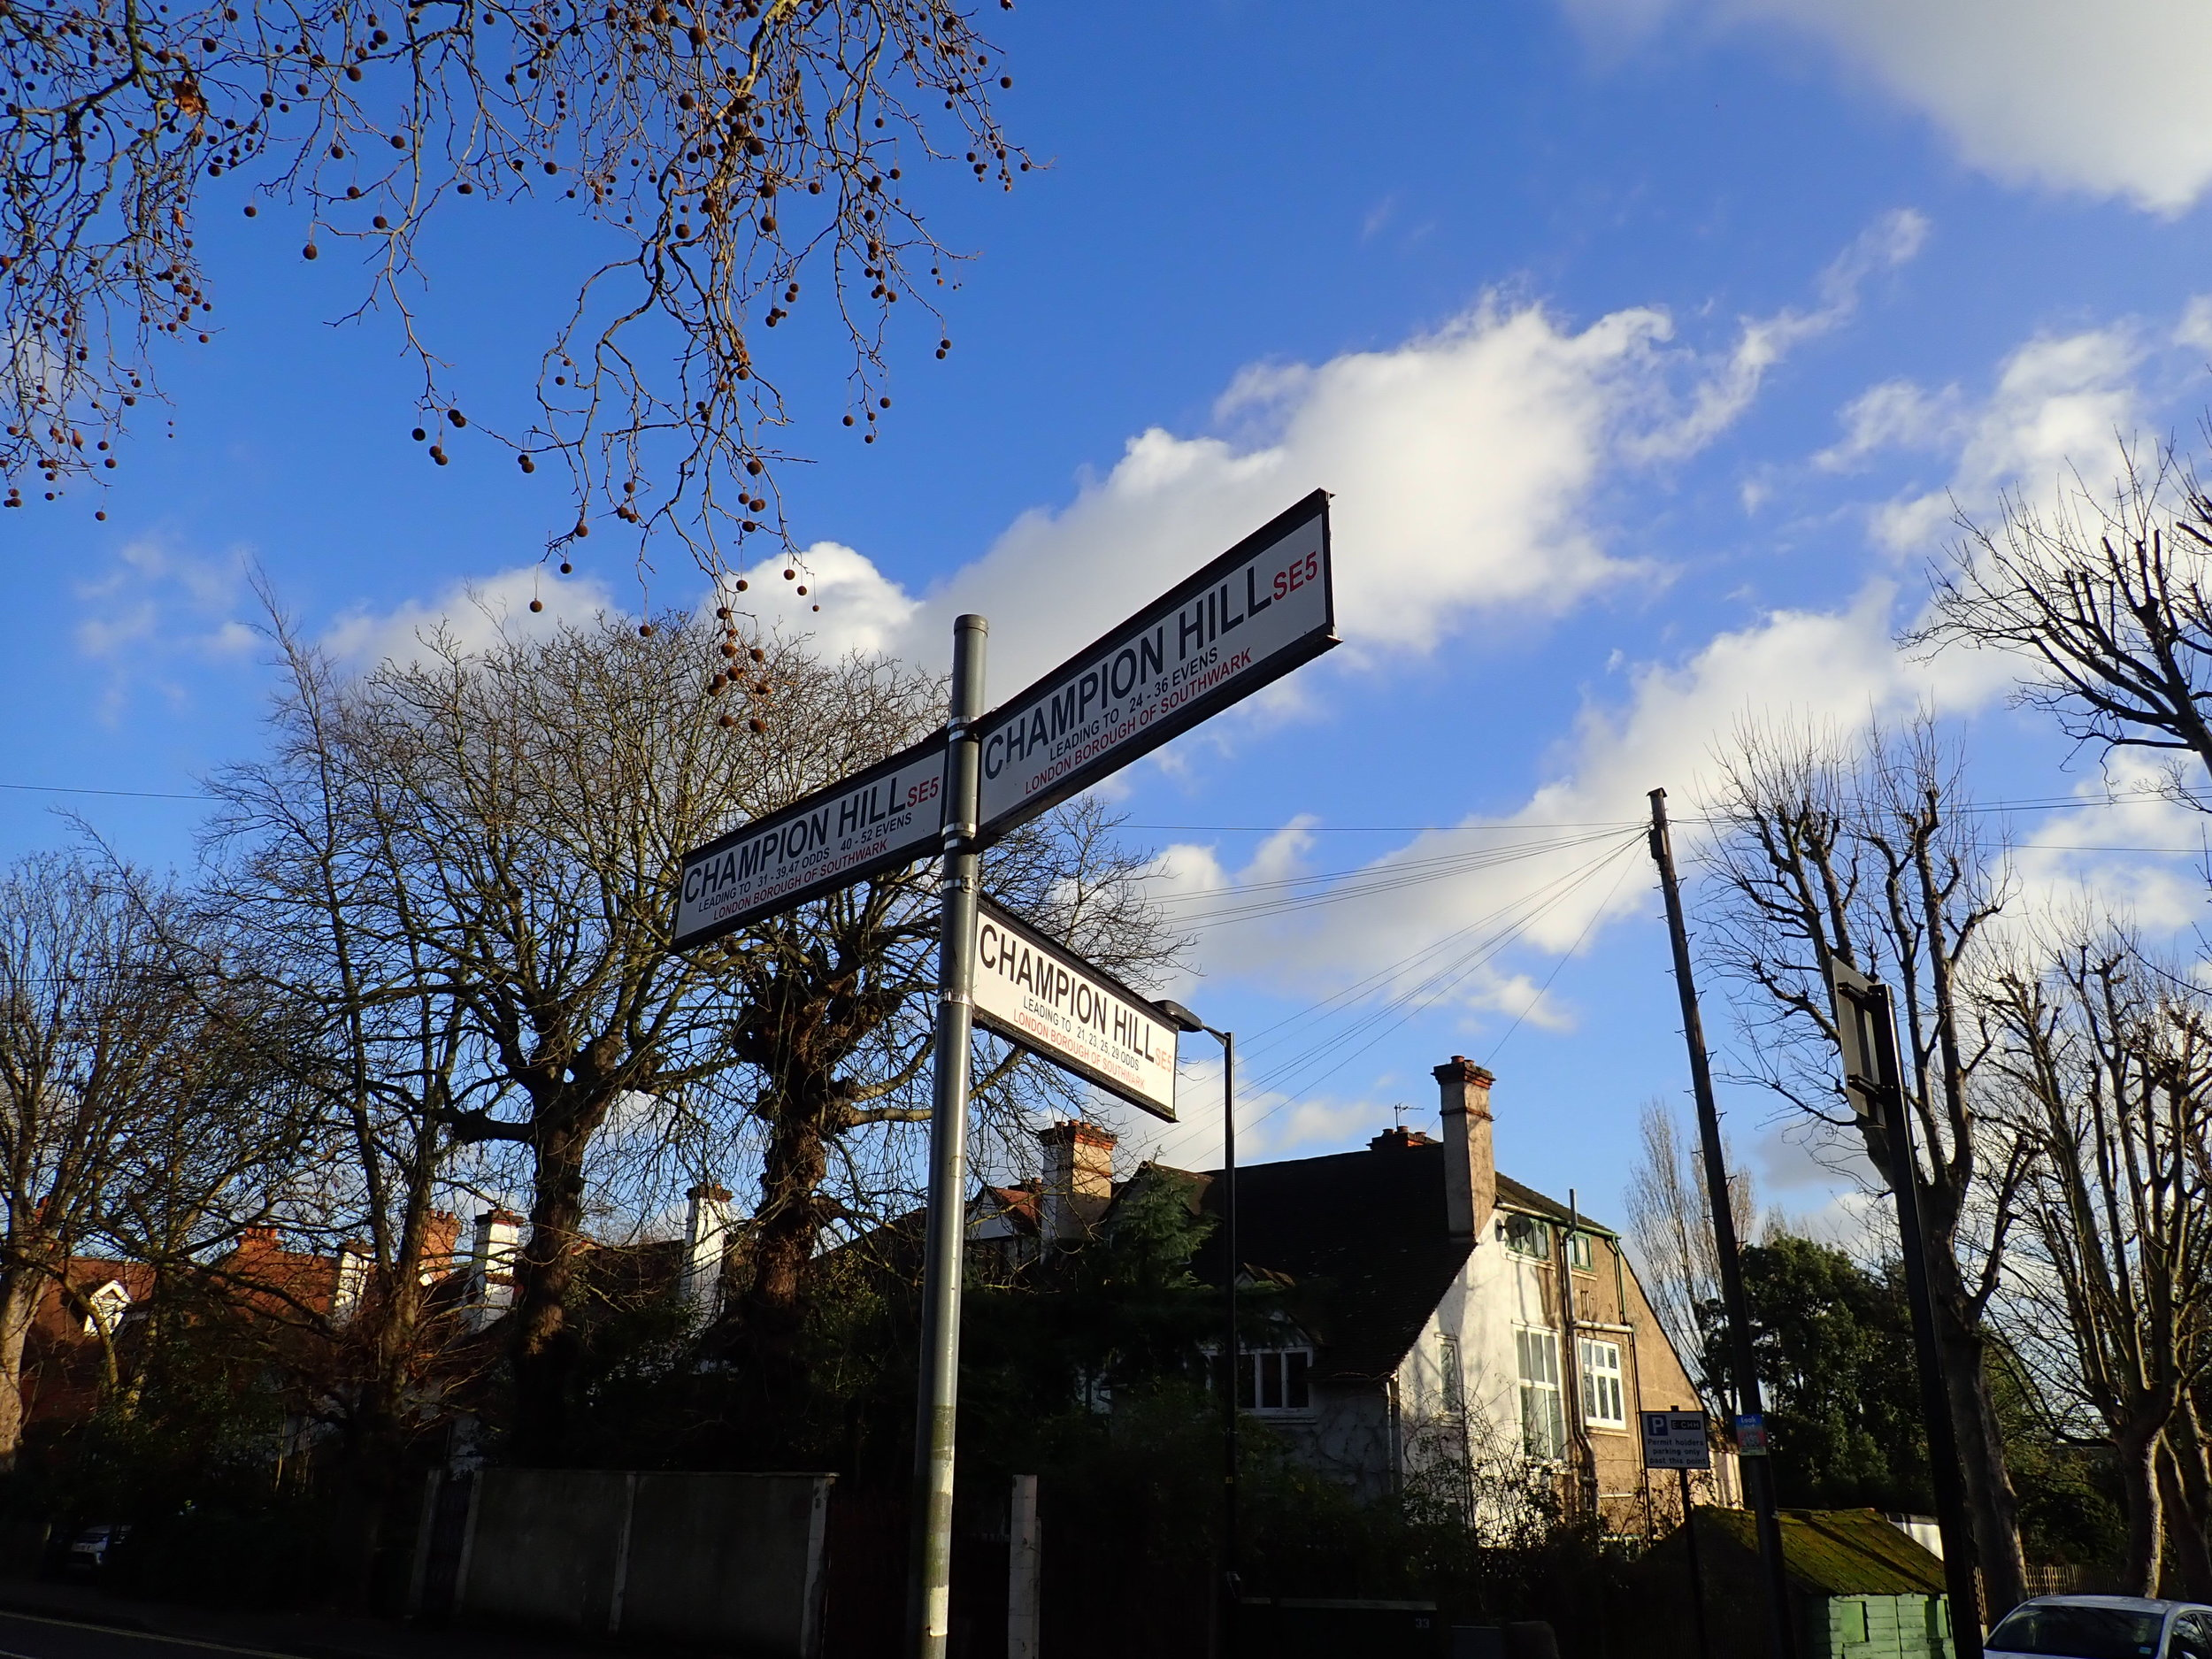 Denmark Hill and Camberwell - A Walk Guided by Isobel - 14.30 - 16.45Starts outside Denmark Hill Station, SE5 8BBGuided walk around the neighbourhoods of Denmark Hill and Camberwell with an award winning Blue Badge Guide.£10, payable on the day in cash only